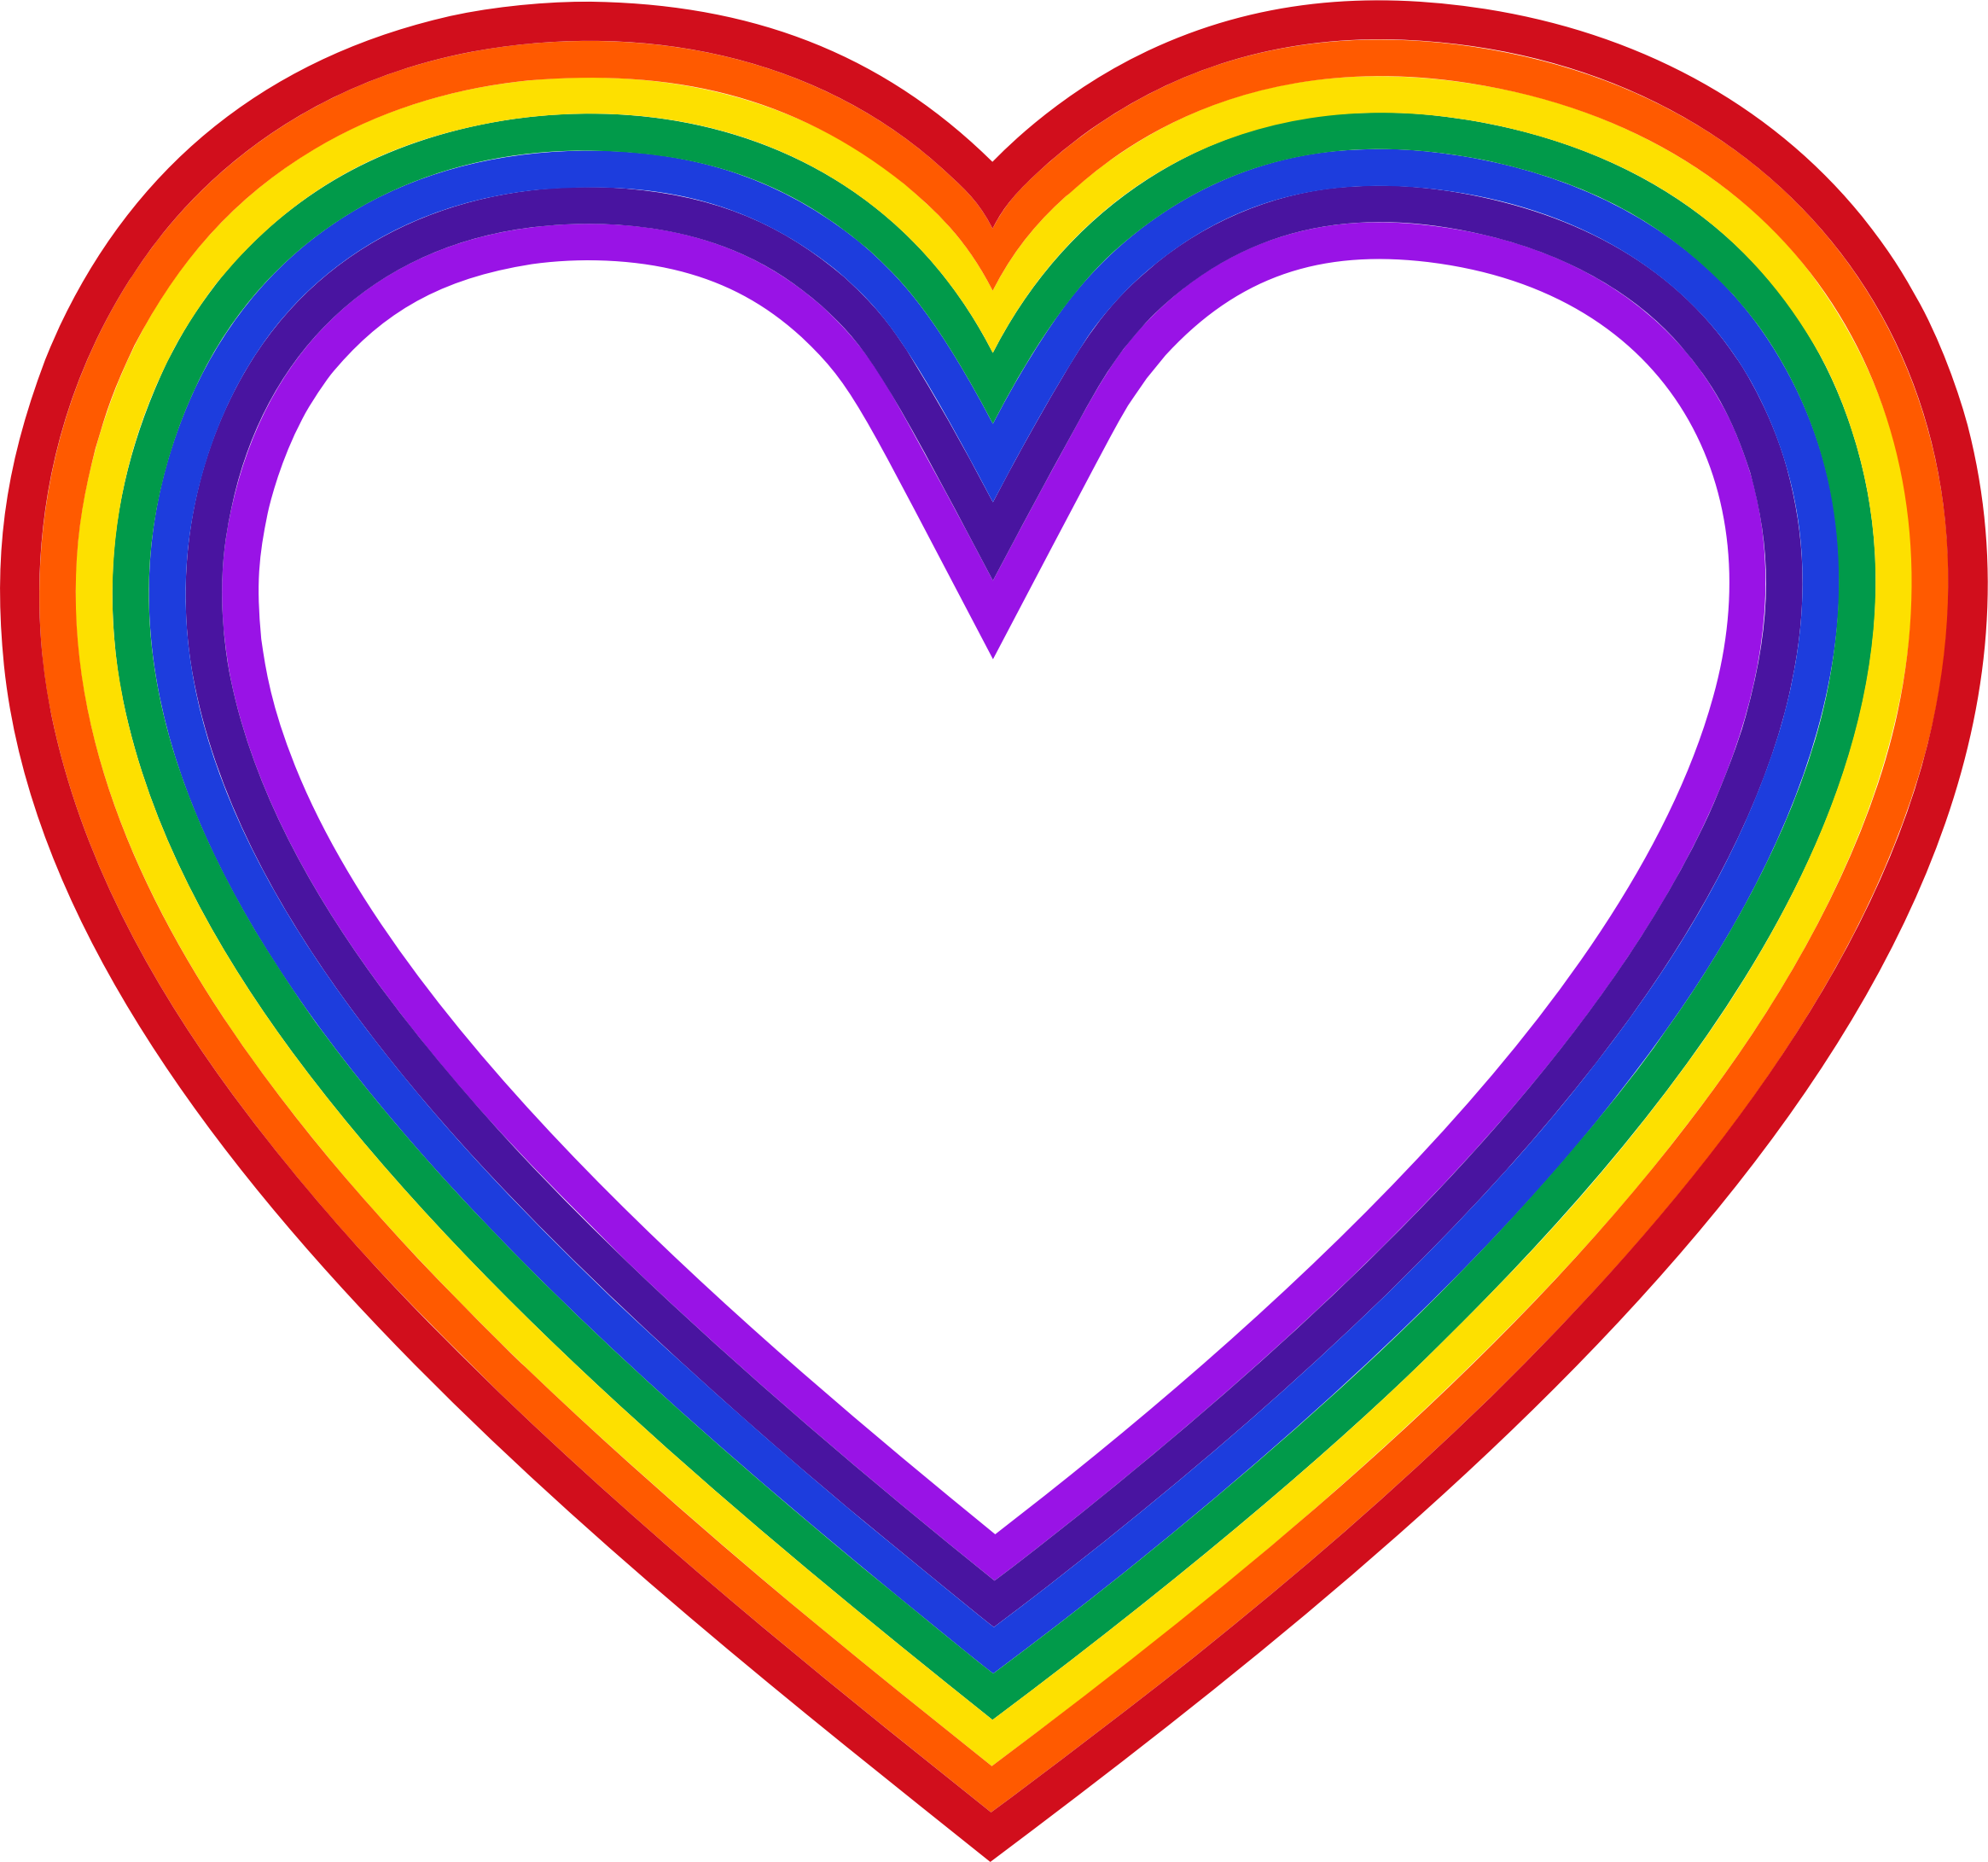 Rainbow heart clipart clipart royalty free download Clipart - Heart Rainbow Mark II clipart royalty free download